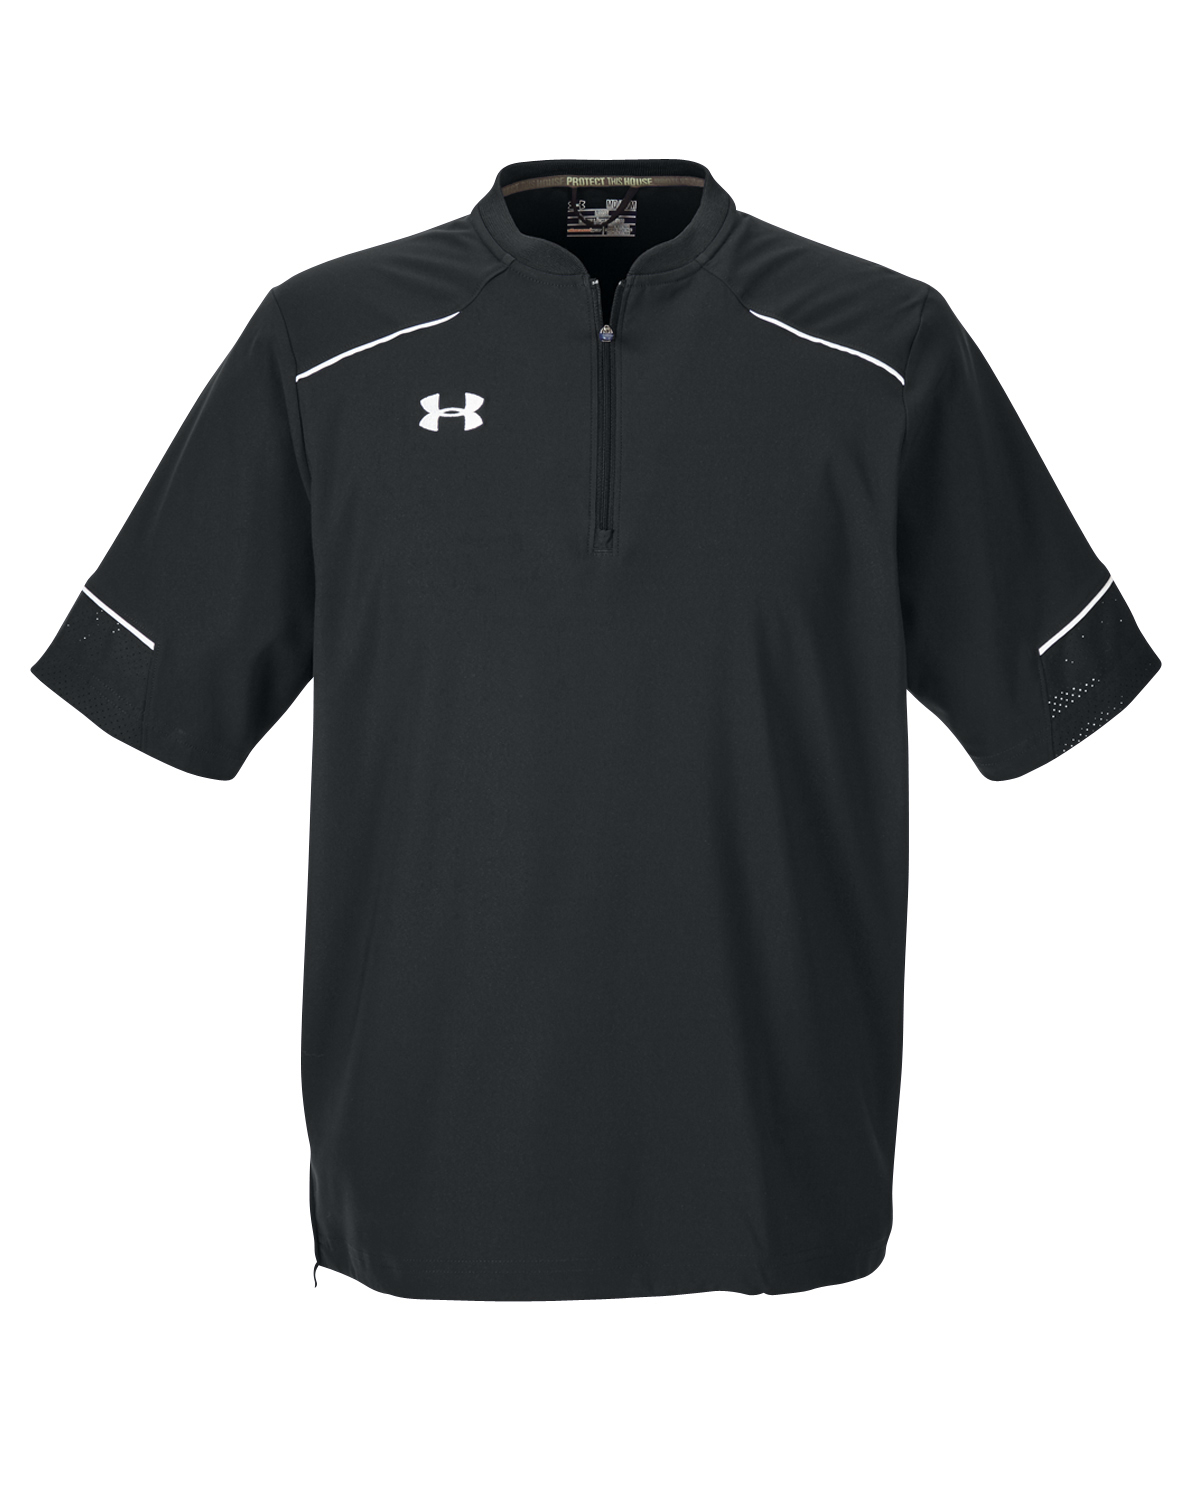 Under Armour 1252002 - Men's Ultimate Short Sleeve Windshirt